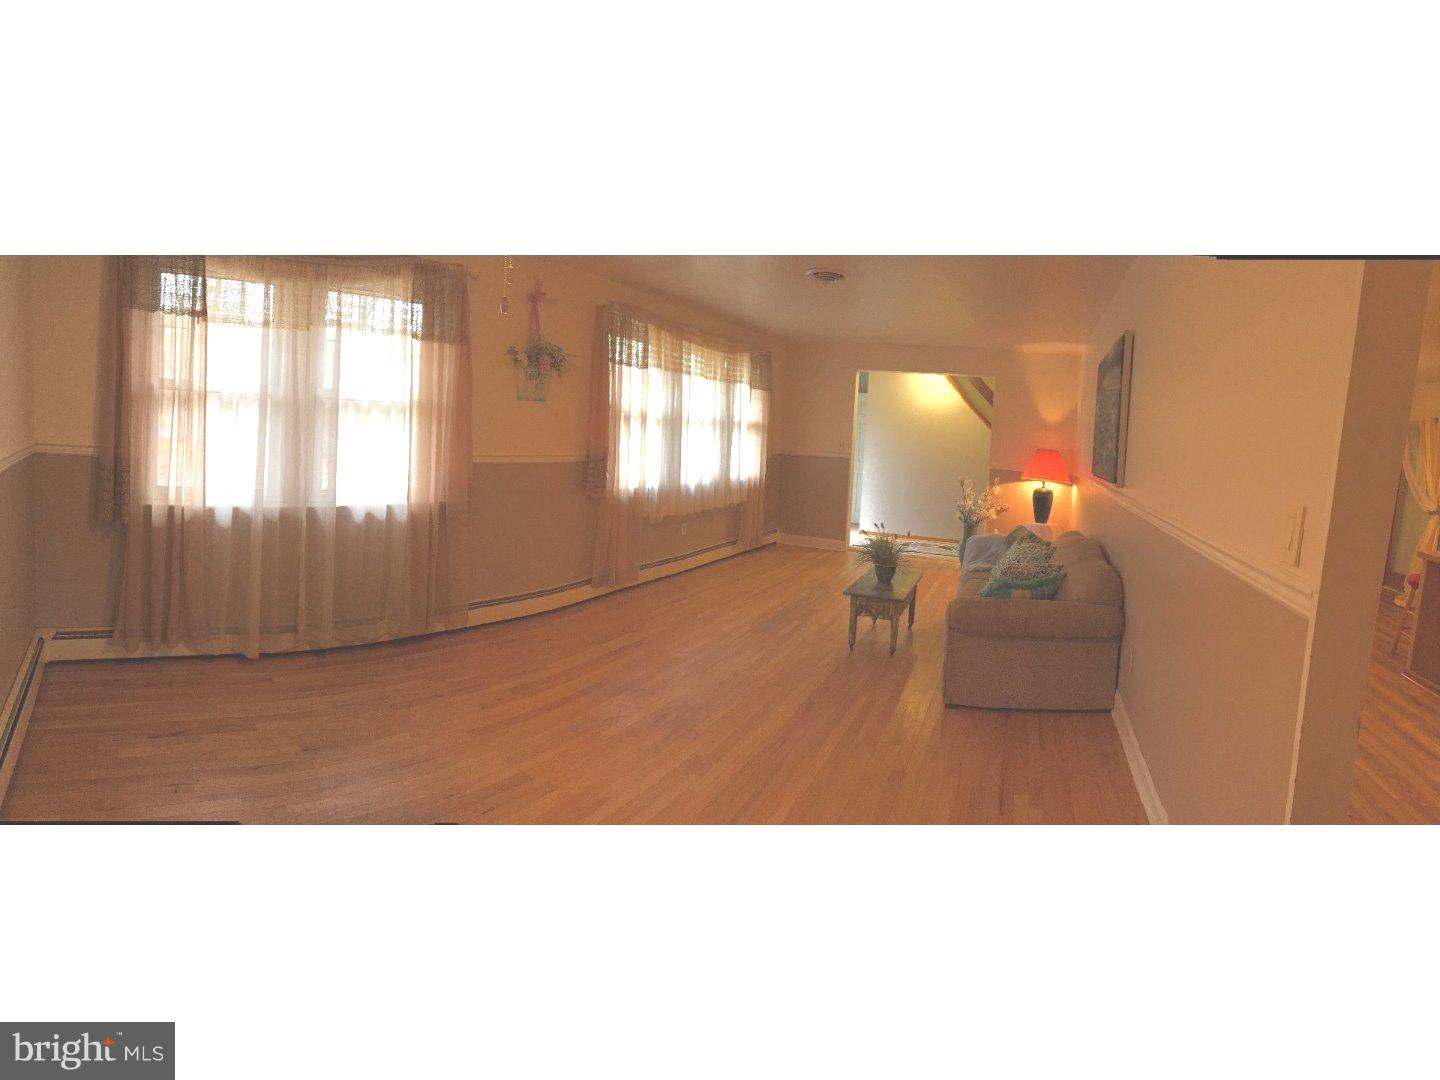 Single Family Home for Sale at 120 SOOY PLACE Road Tabernacle Twp, New Jersey 08088 United States